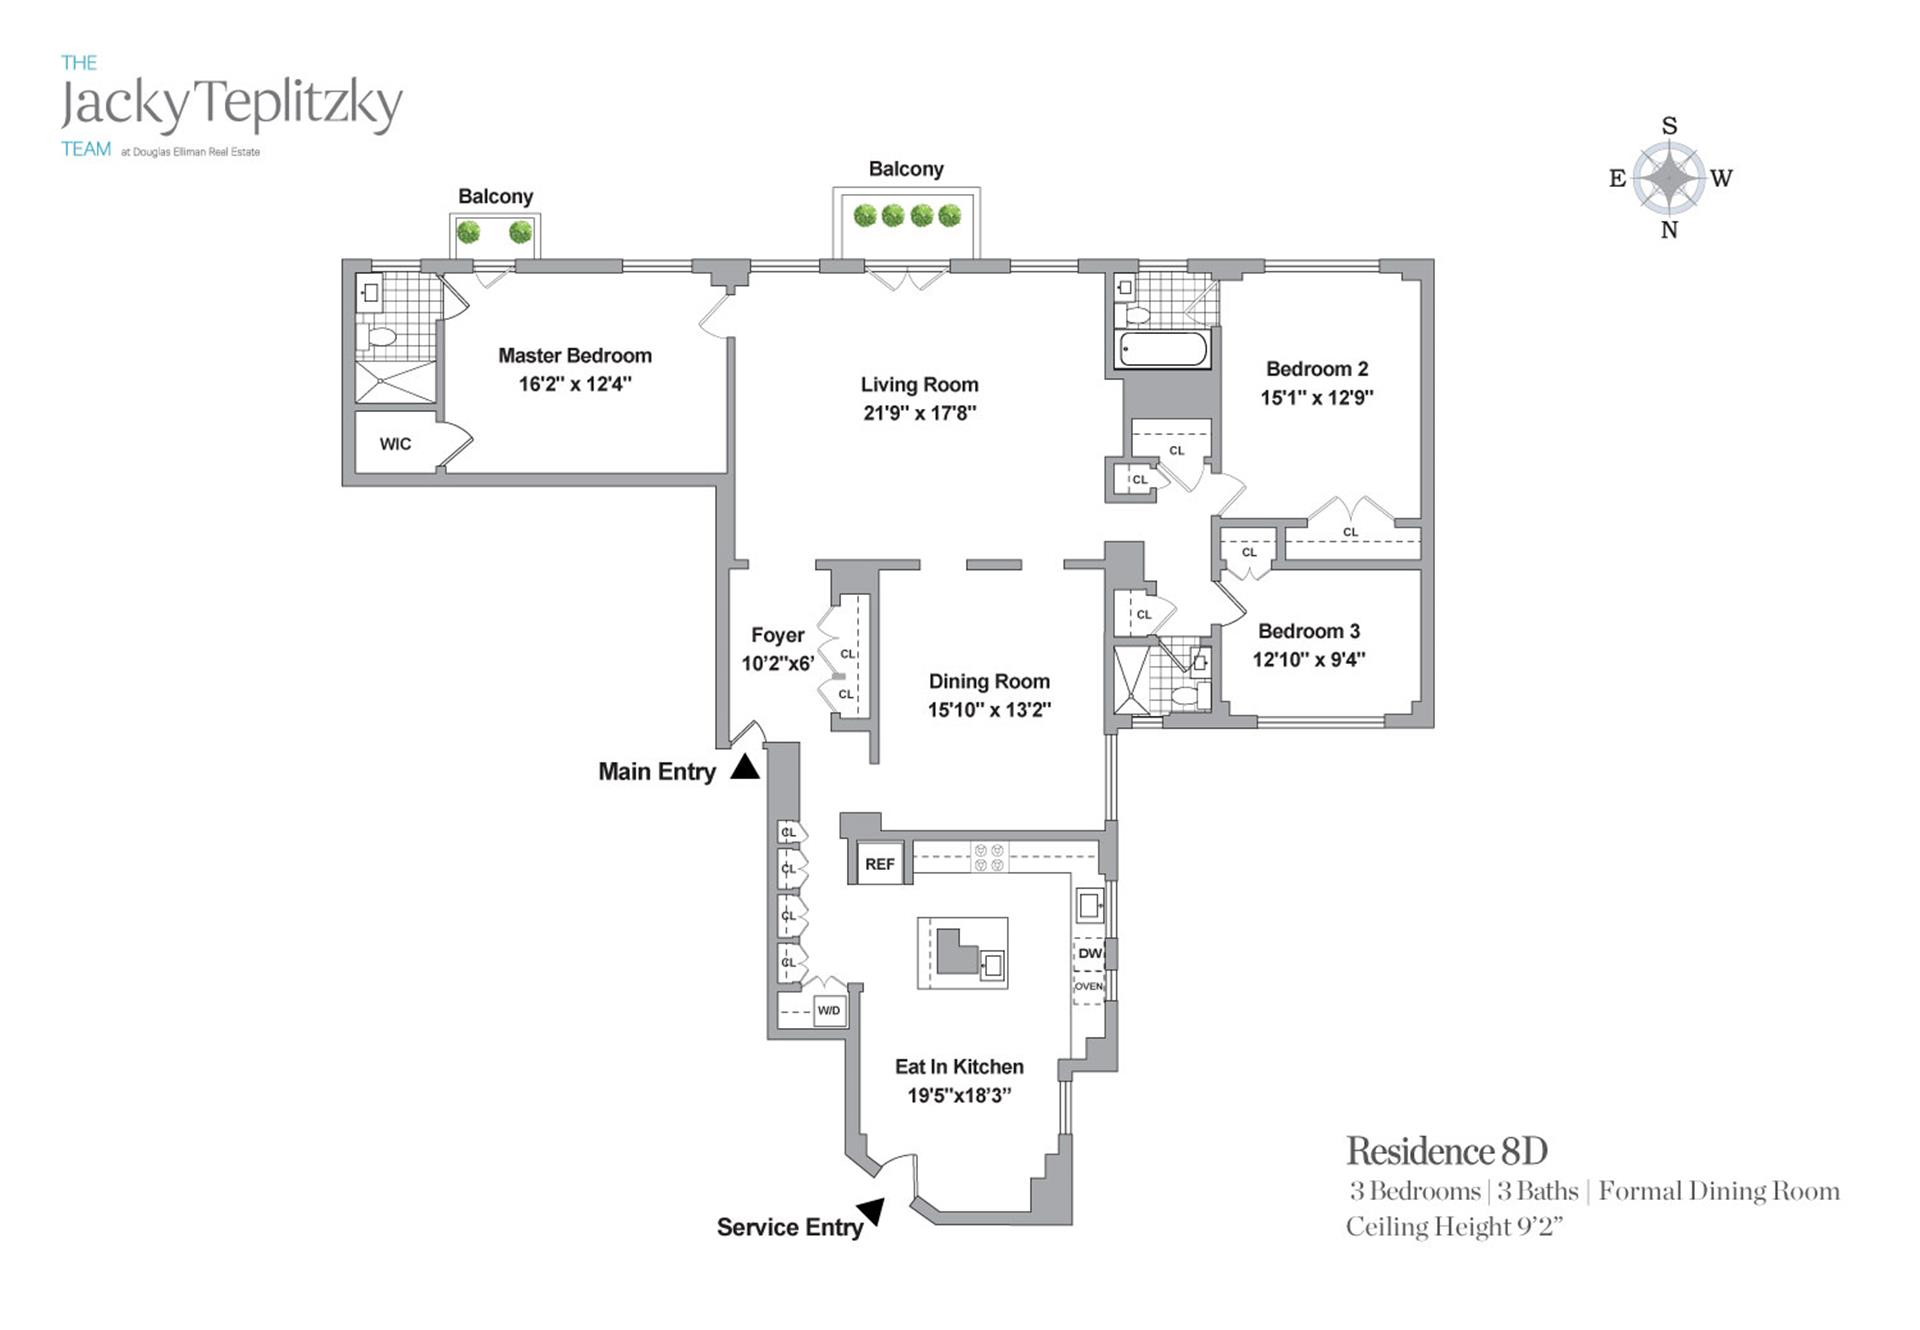 Floor plan of 430 East 57th St, 8D - Sutton Area, New York